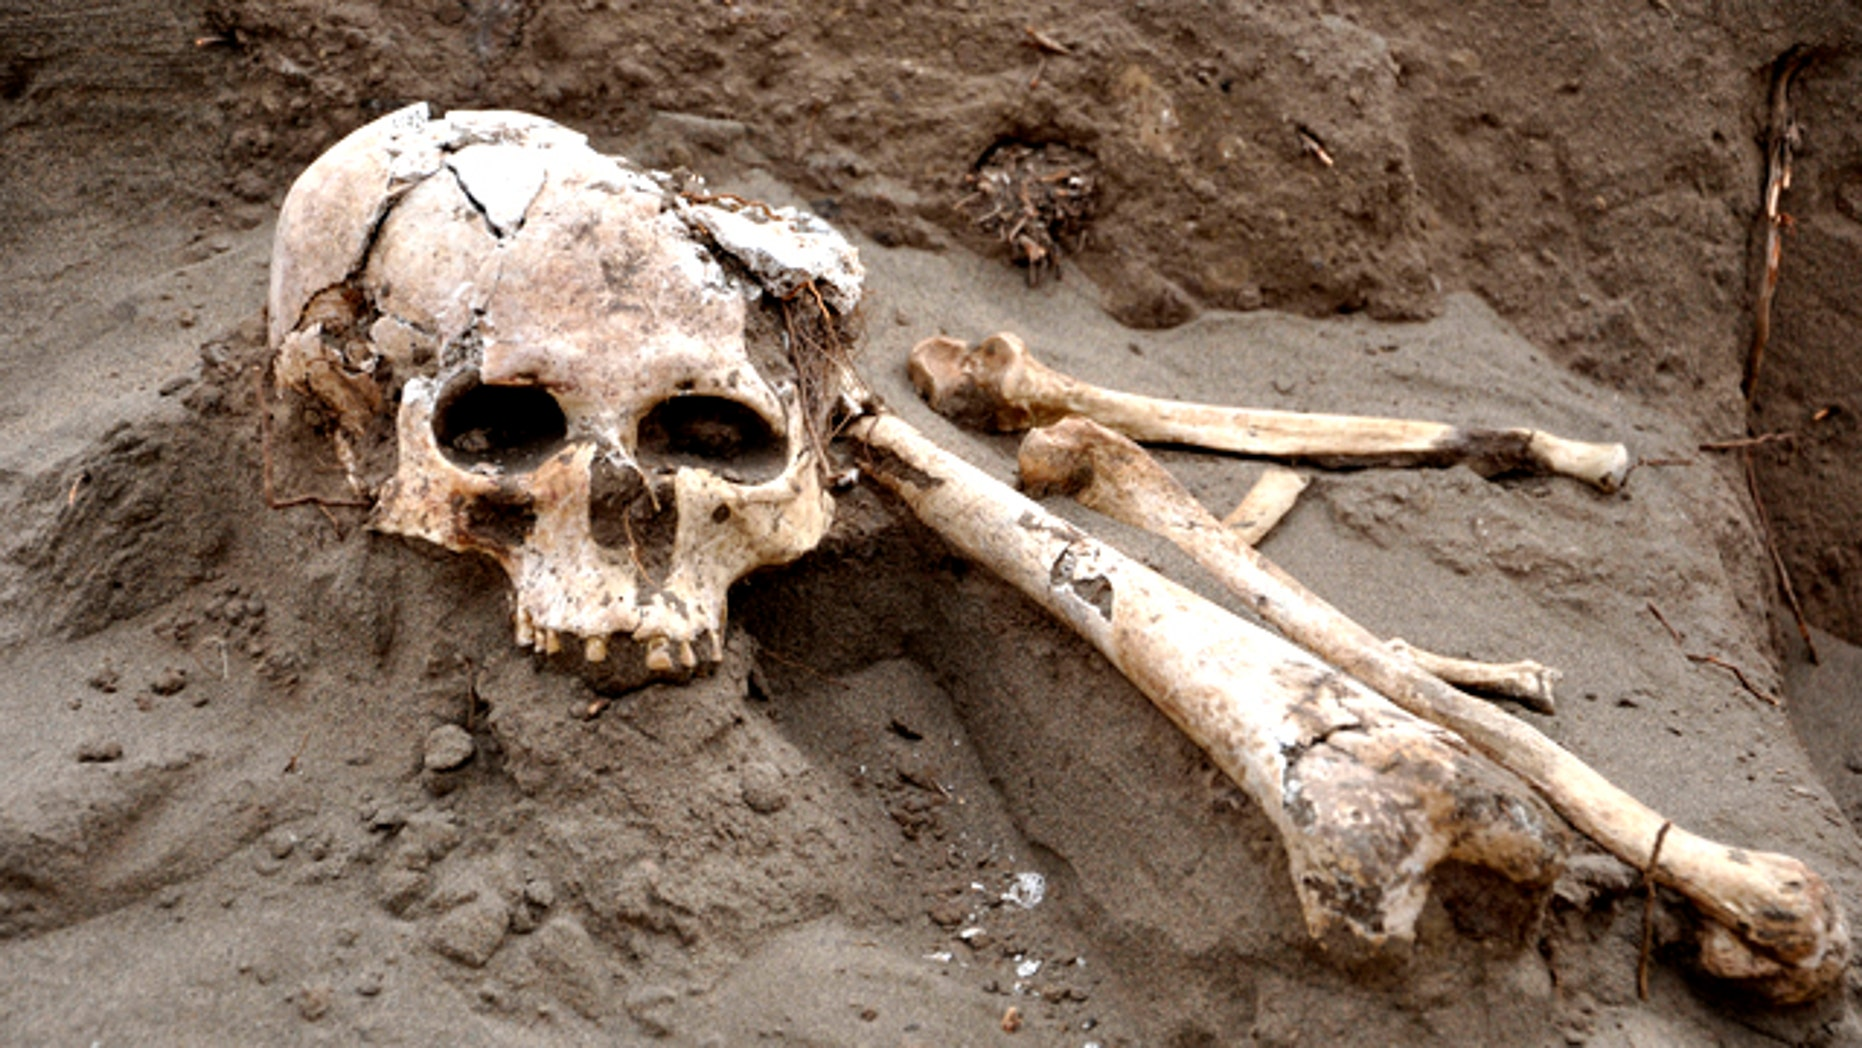 July 15, 2011: A skull and bones sit on a pre-hispanic tomb recently discovered in Lambayeque, northern Peru. According to Carlos Wester, chief of the team of archaeologists who discovered the tomb, it belongs to a top lord of the Lambayeque culture, believed to have been an executioner.